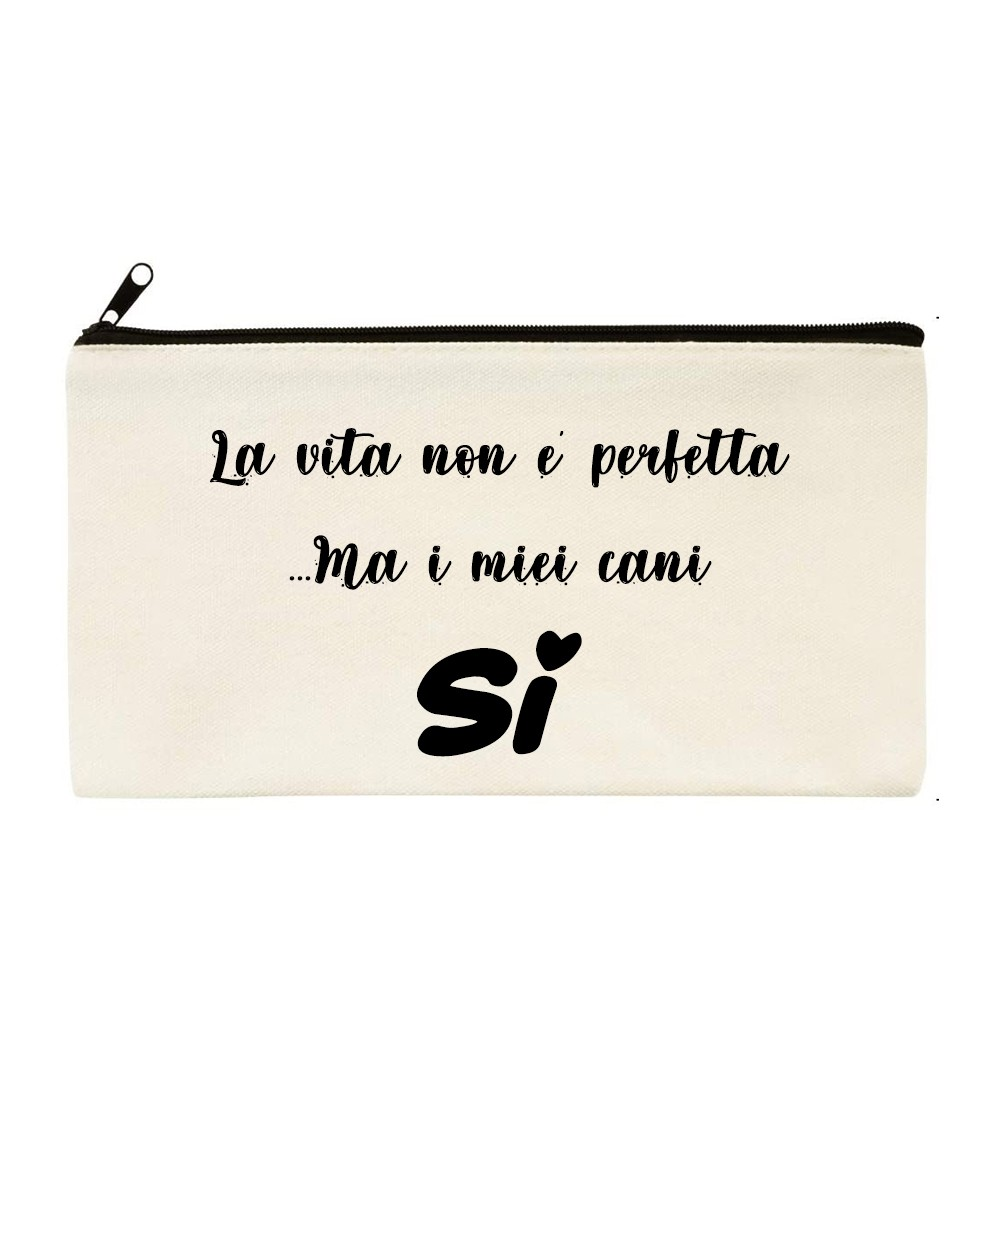 Personalized Pochette with message